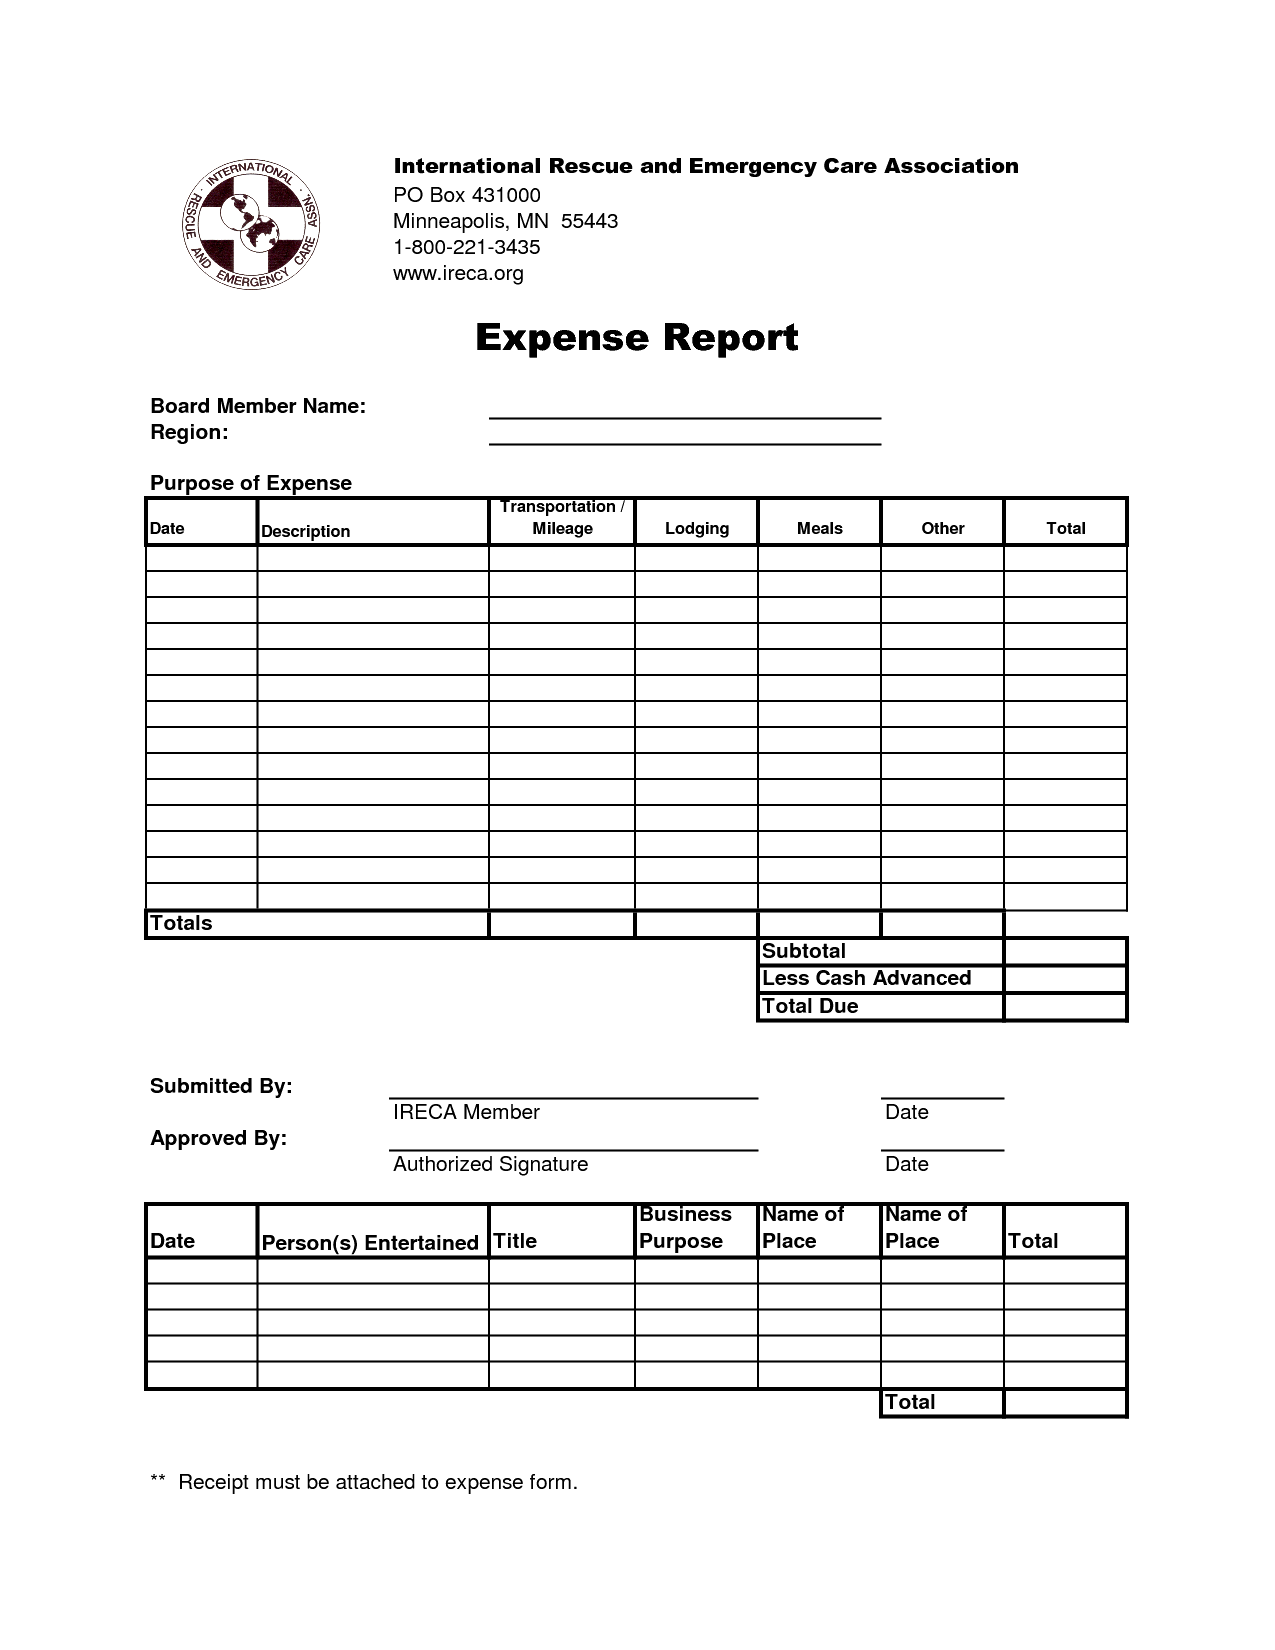 Clever business expense report template and form sample vueklar home clever business expense report template and form sample vueklar home sample xianning wajeb Choice Image